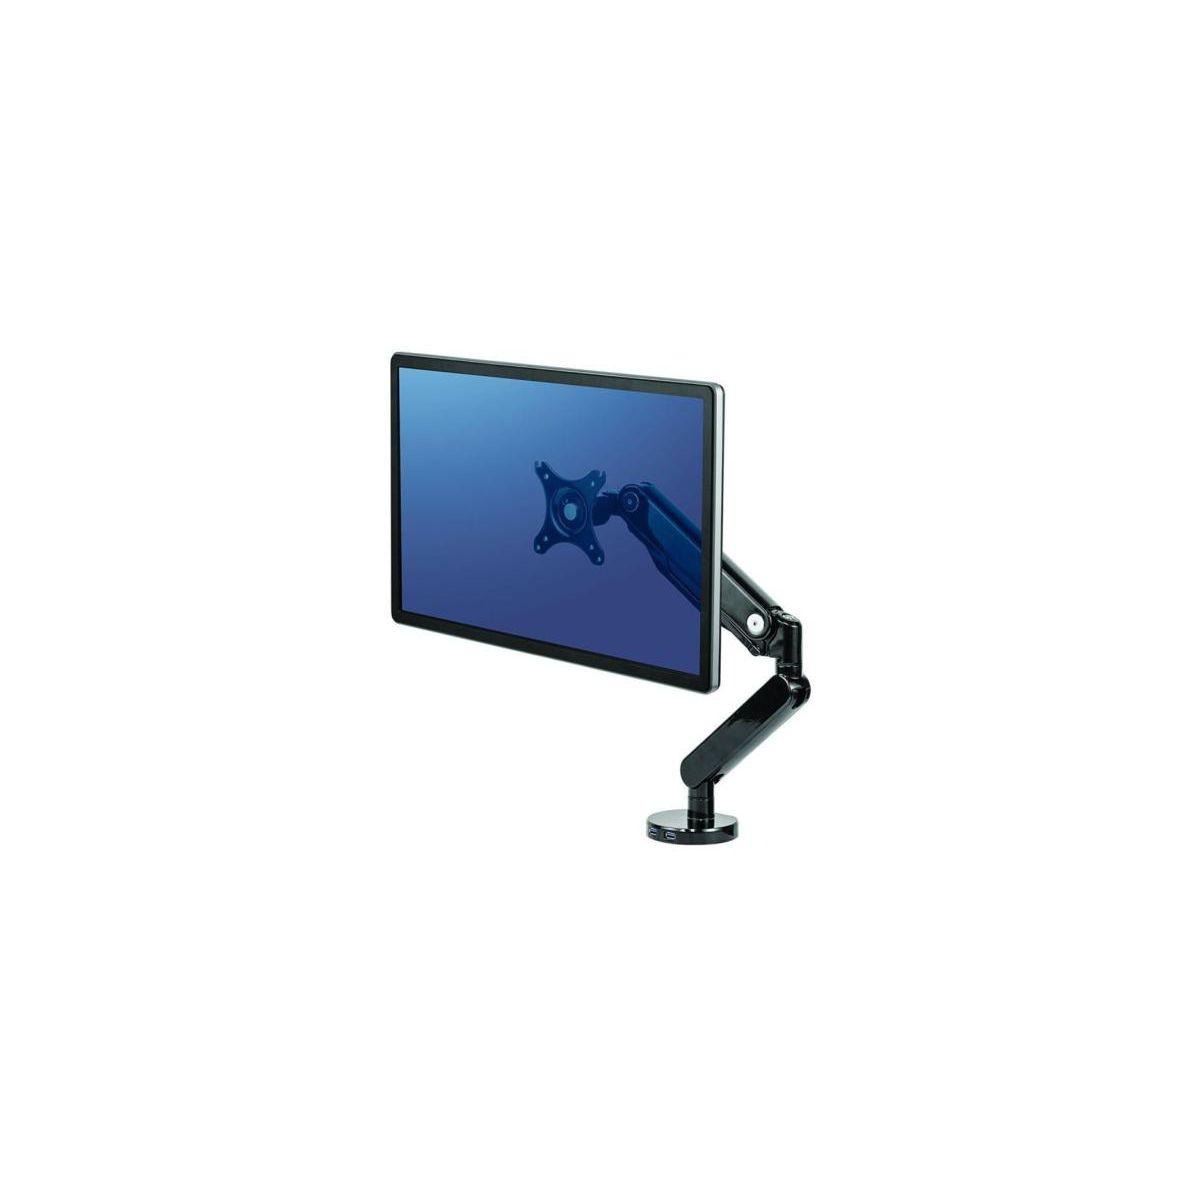 Support �cran fellowes support �cran simple platinum s�rie - 20% de remise imm�dia